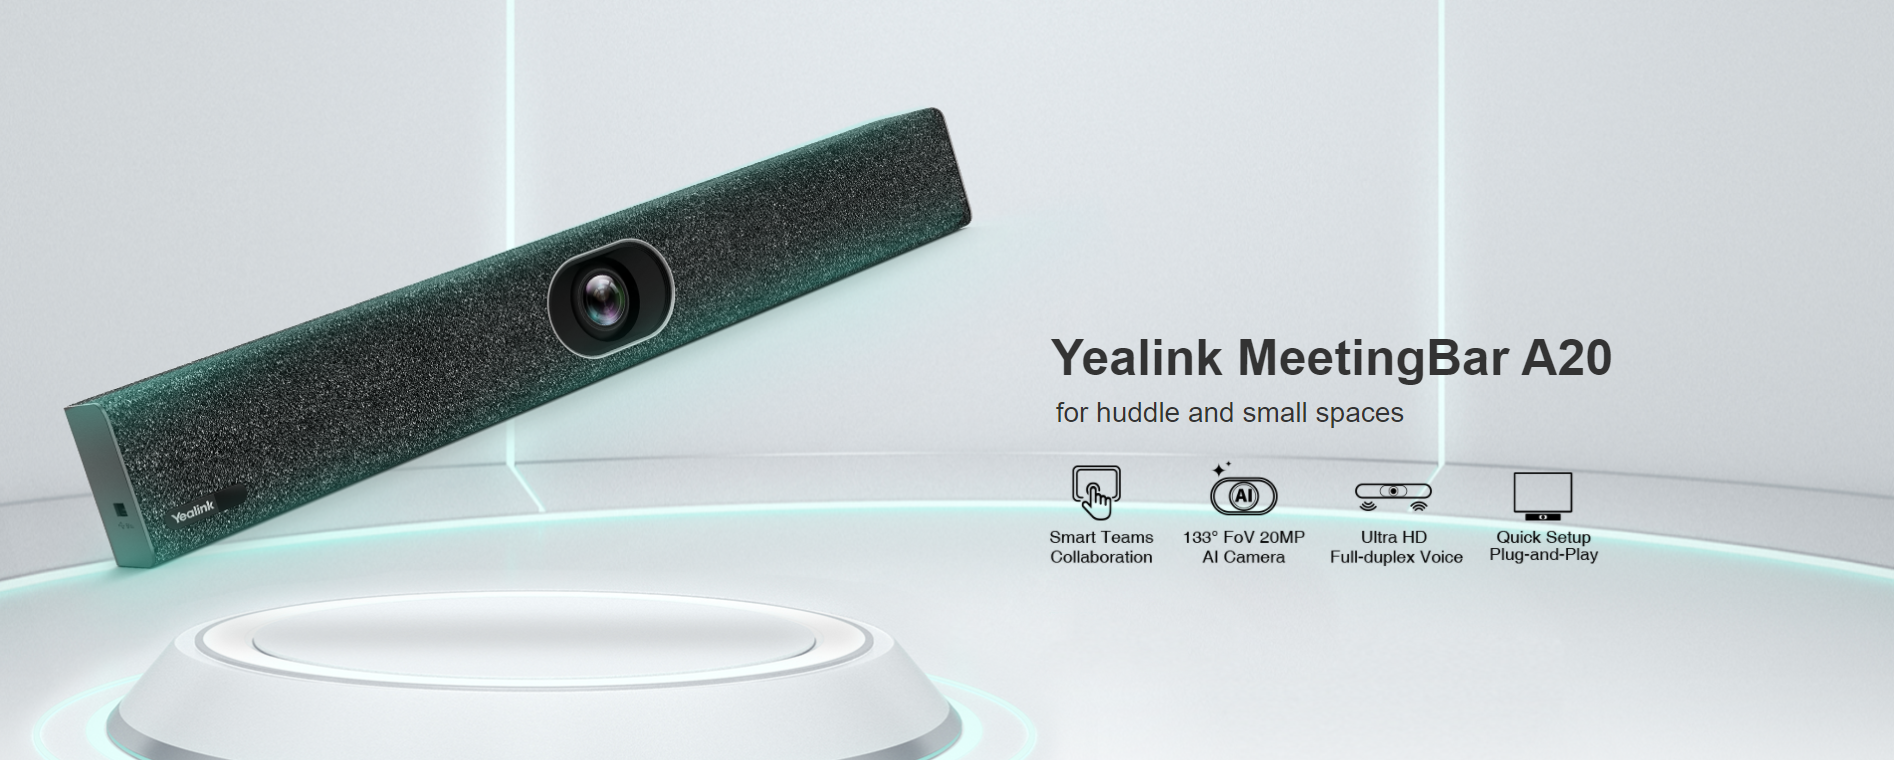 Yealink A20 Microsoft Teams All In One Meeting Bar with CTP18 Touch Console - Hong Kong Distributor - 香港代理